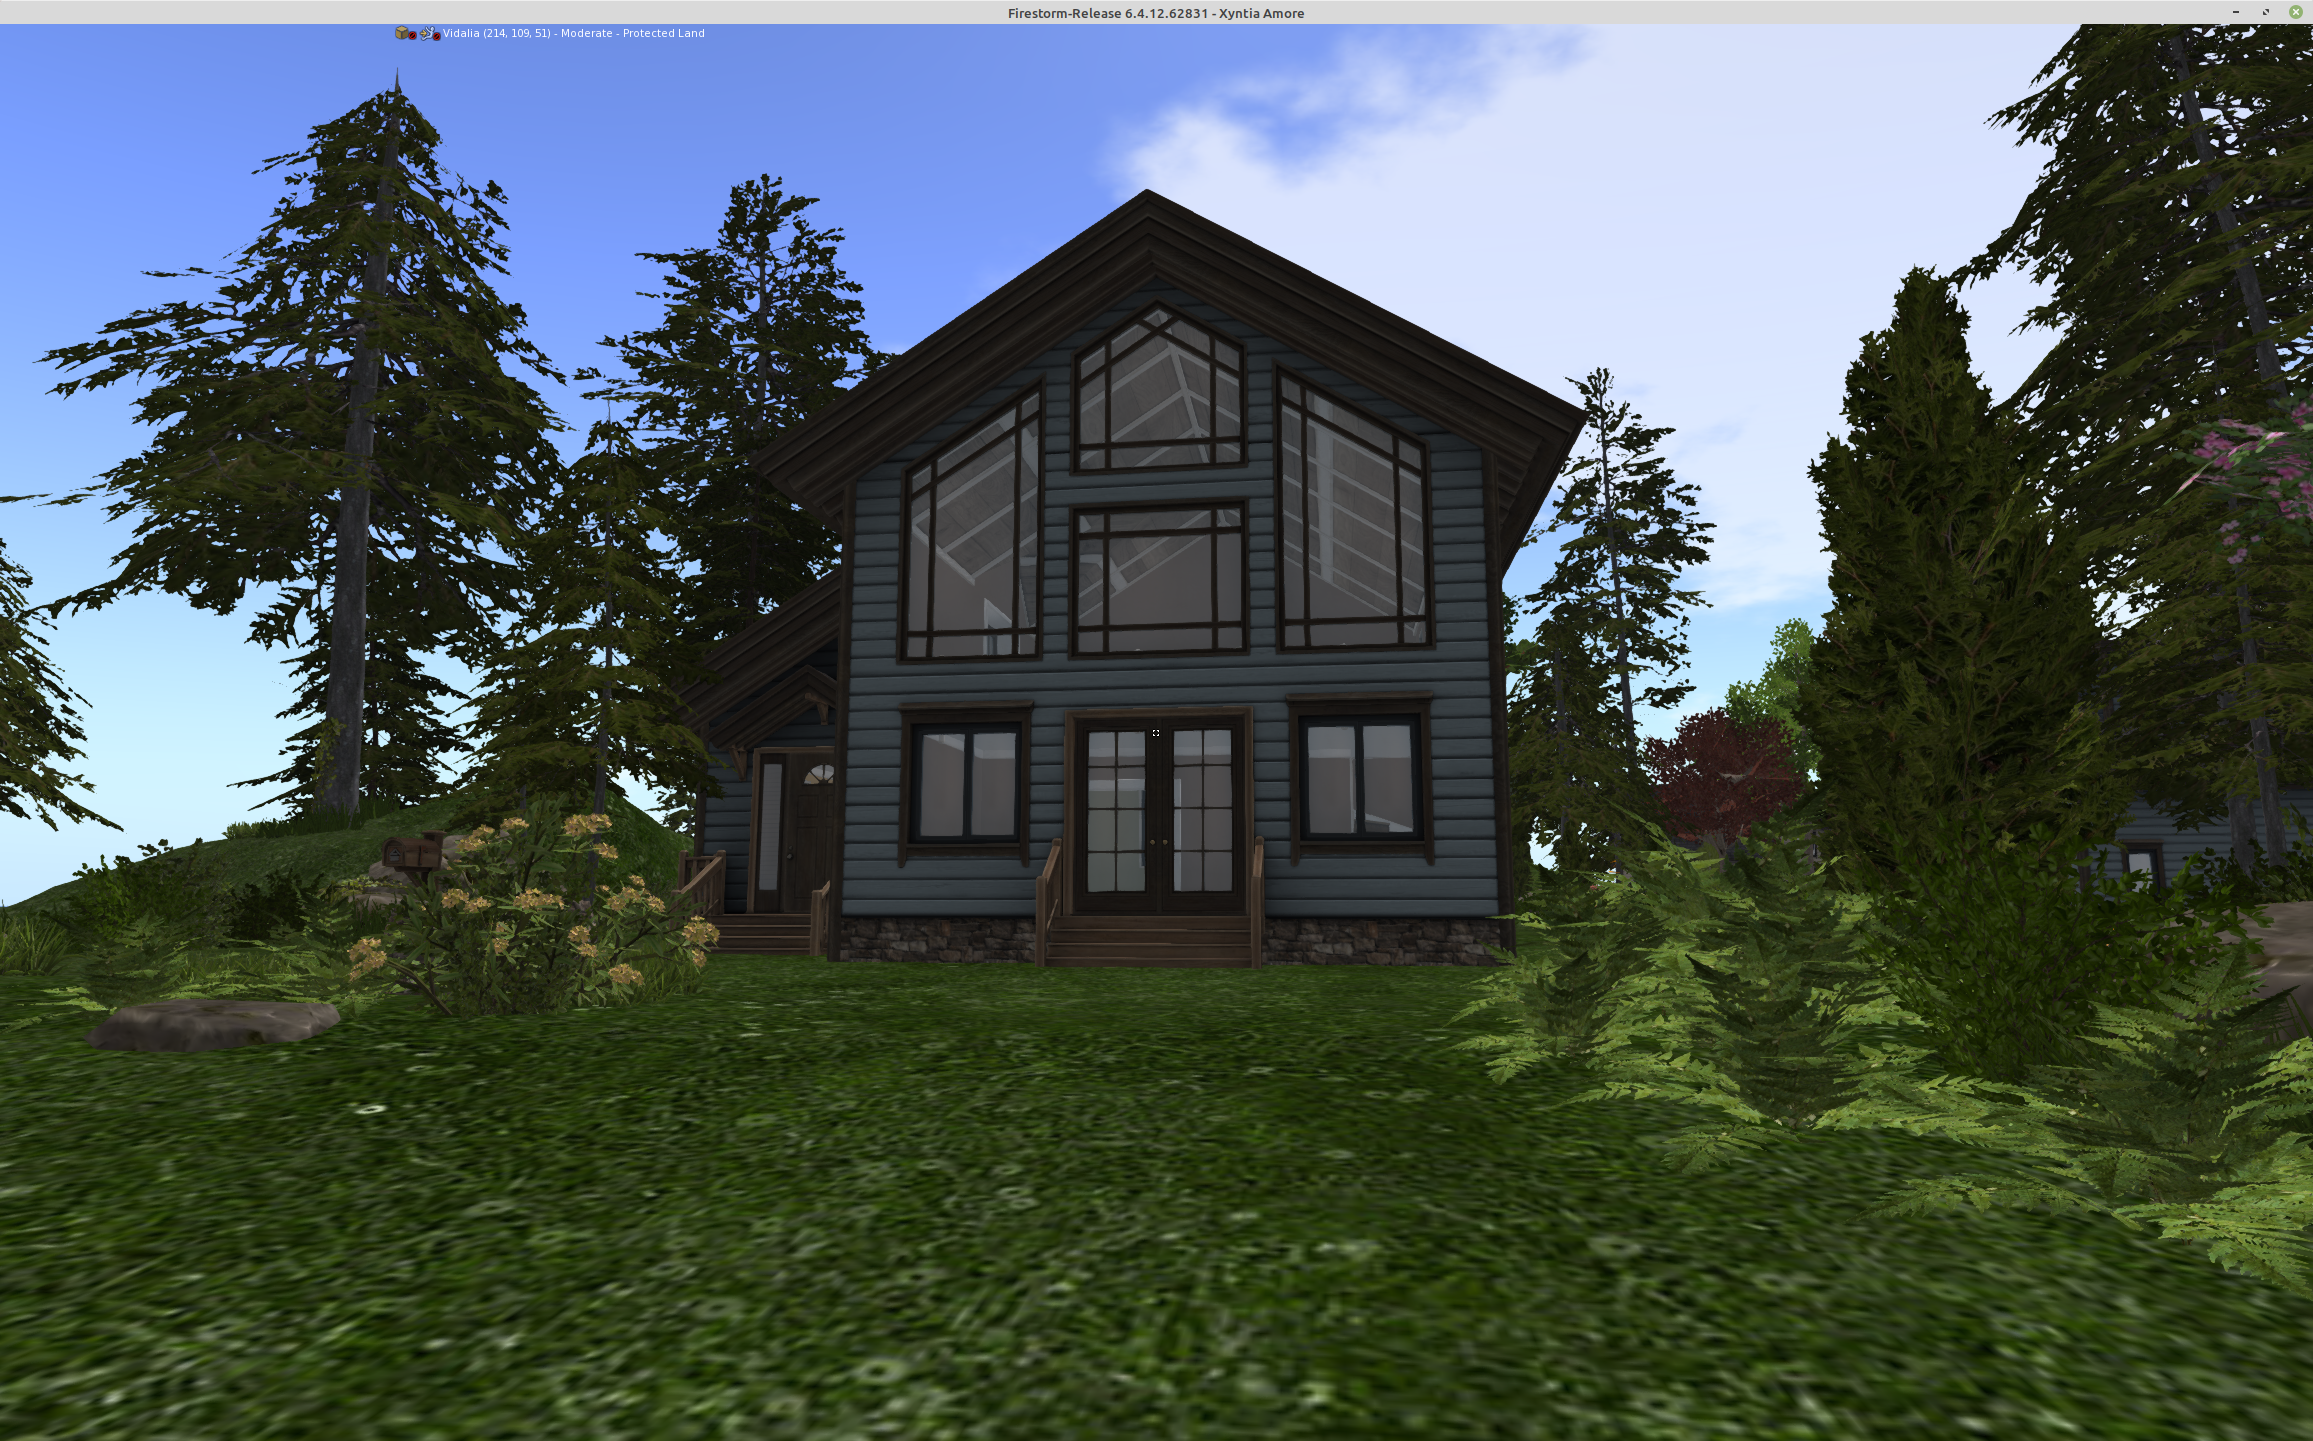 A screenshot of my new home in Second Life. It is a two-story home with lots of windows and is surrounded by lots of trees and bushes.